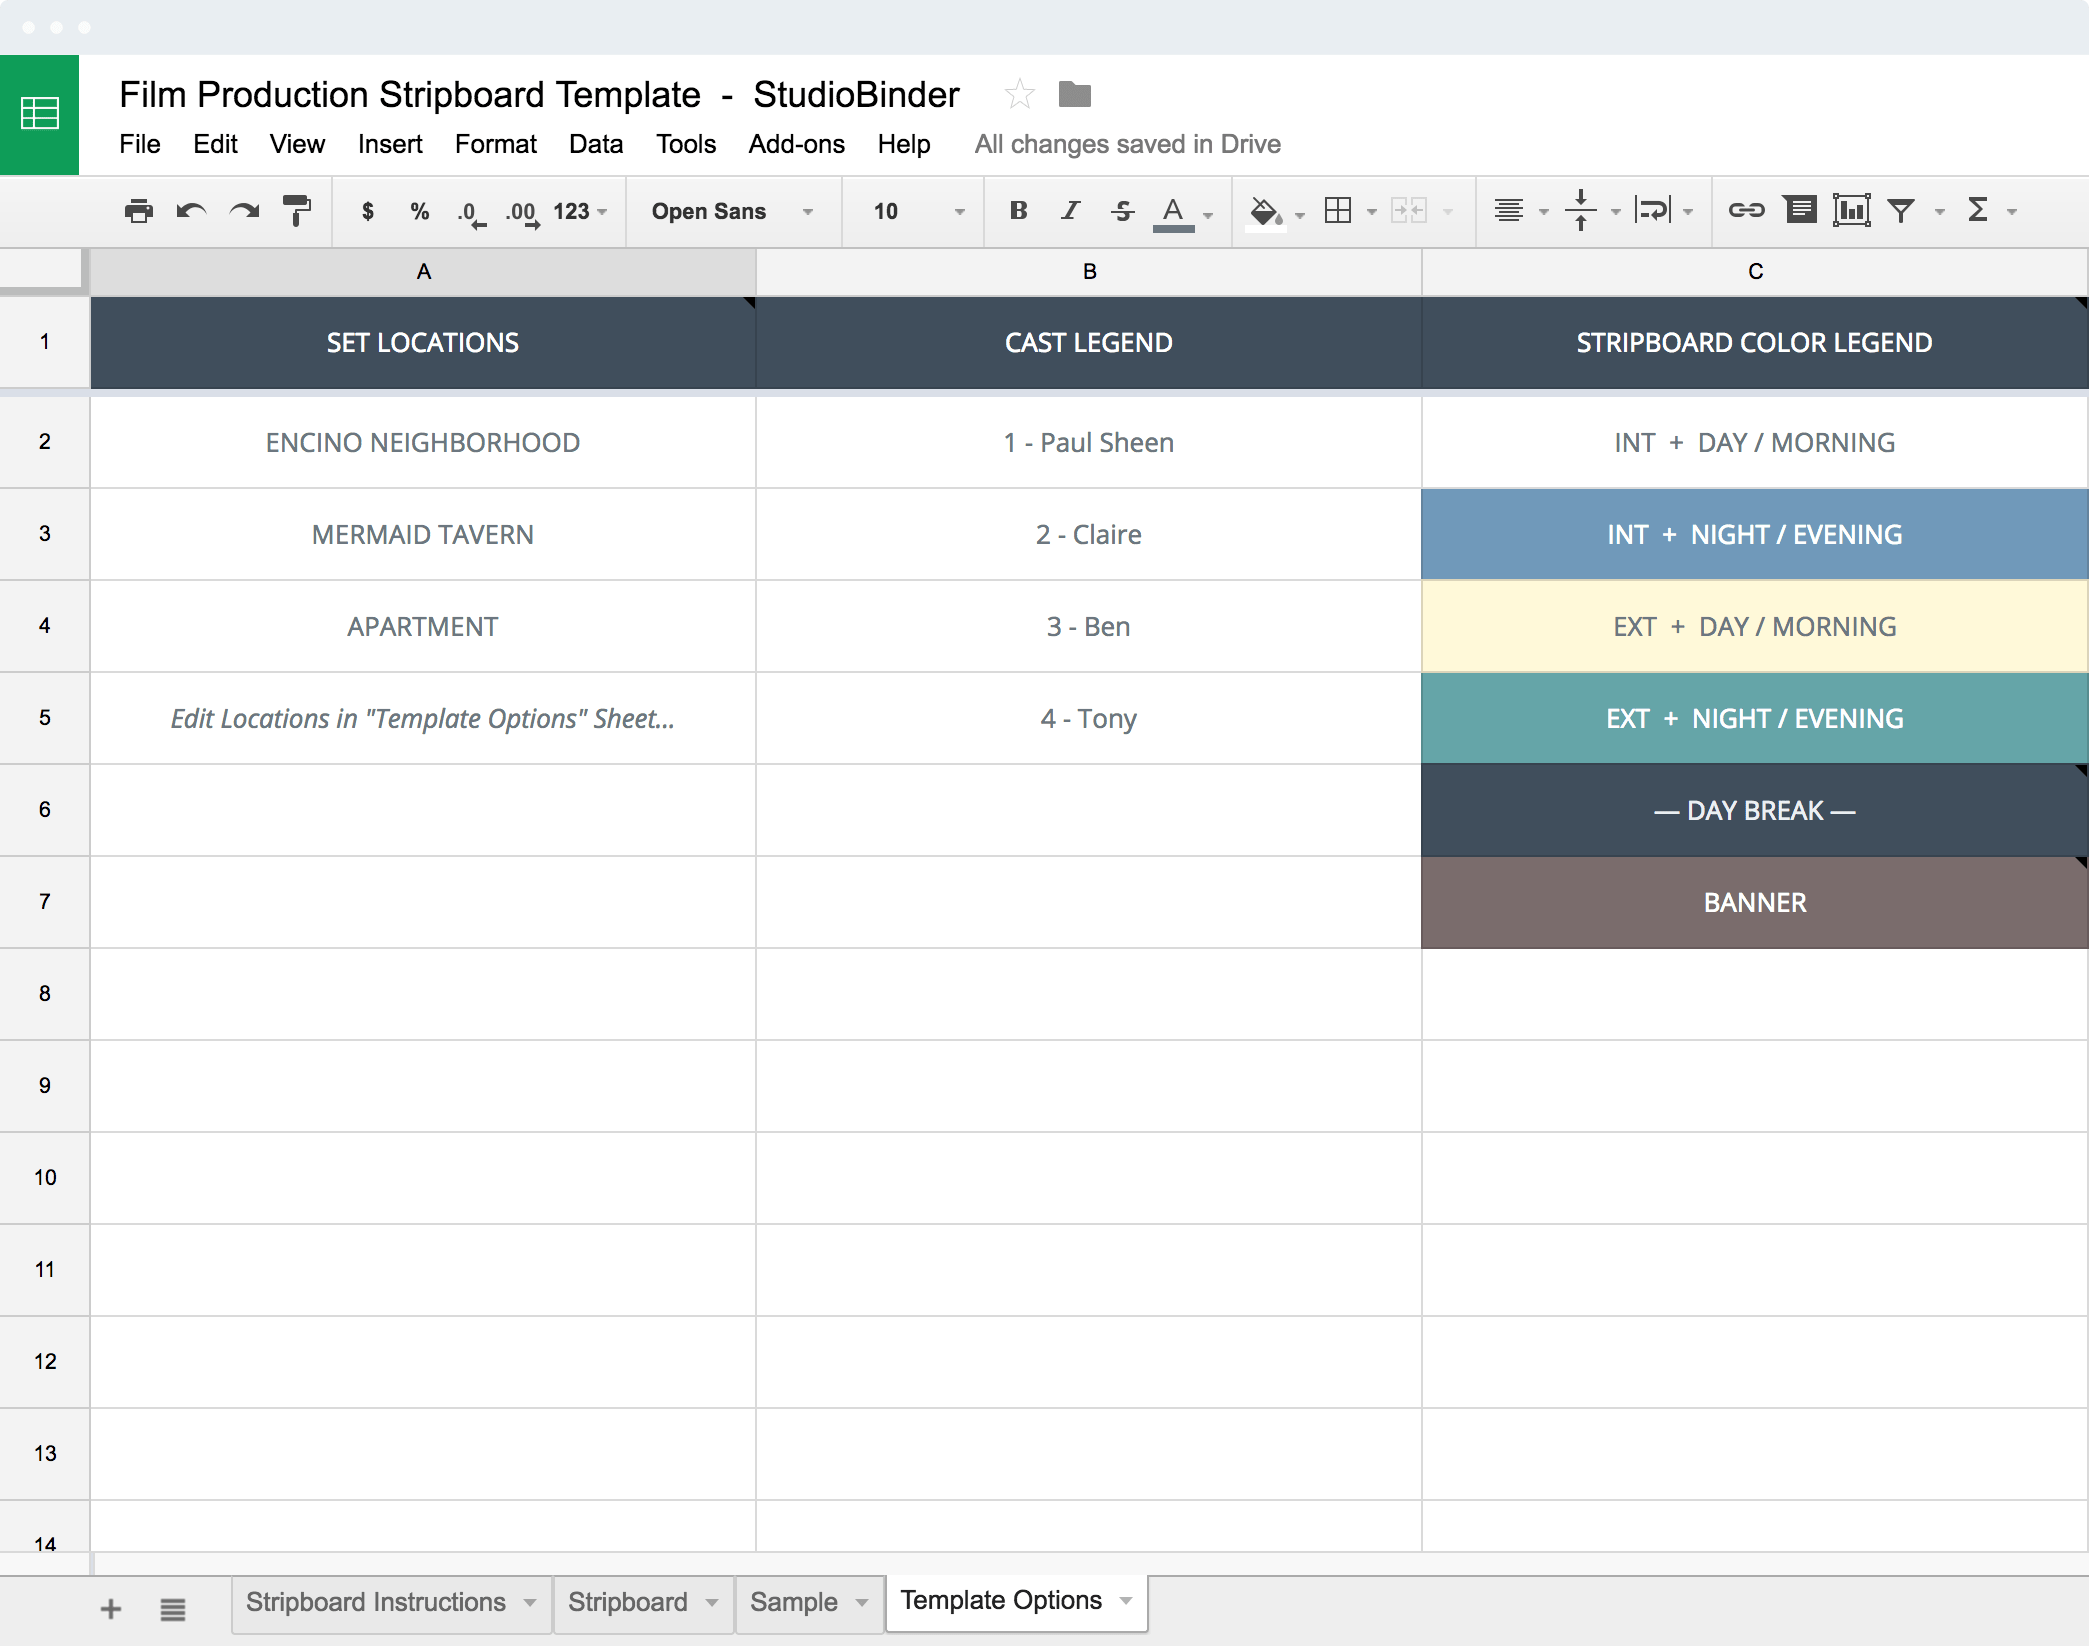 Free Project Management Templates for Film, TV, Publishing   AEC